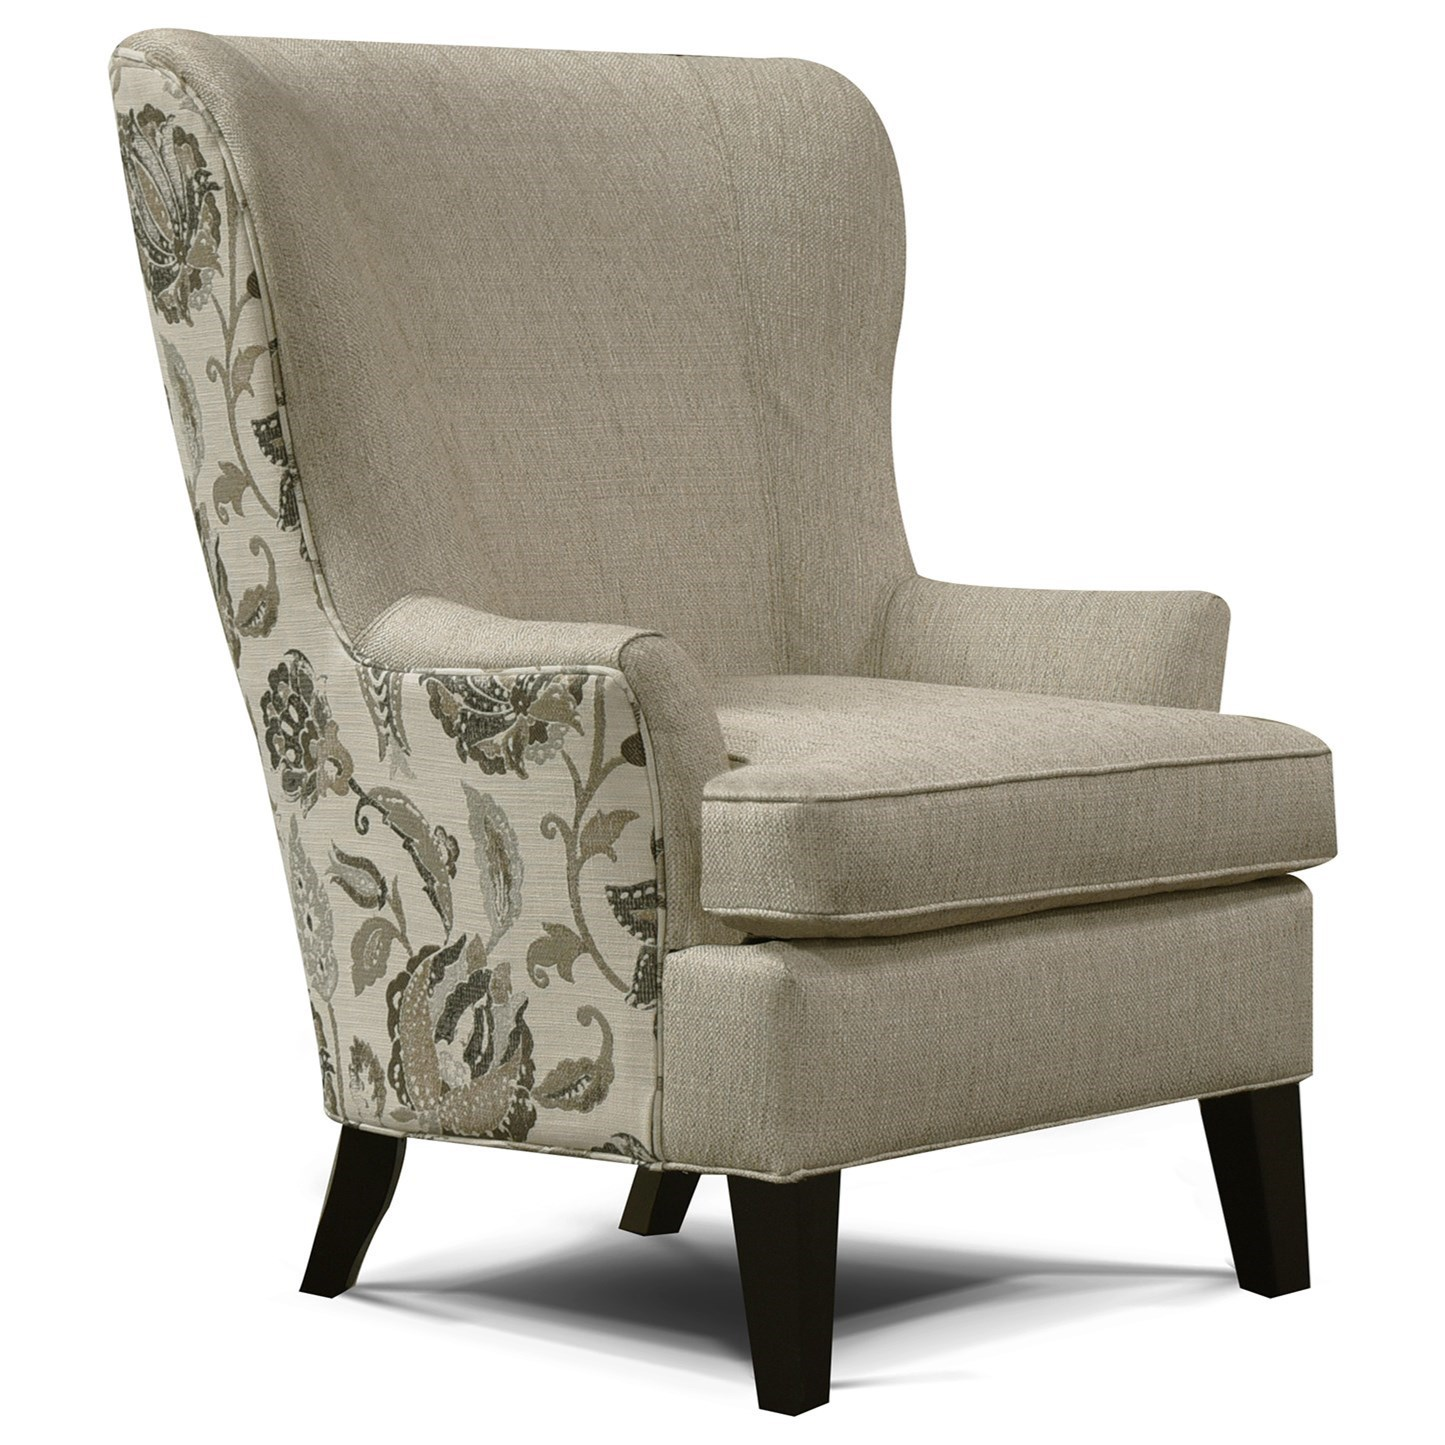 England Smith 4544 Living Room Arm Chair with Wing Style | Furniture ...